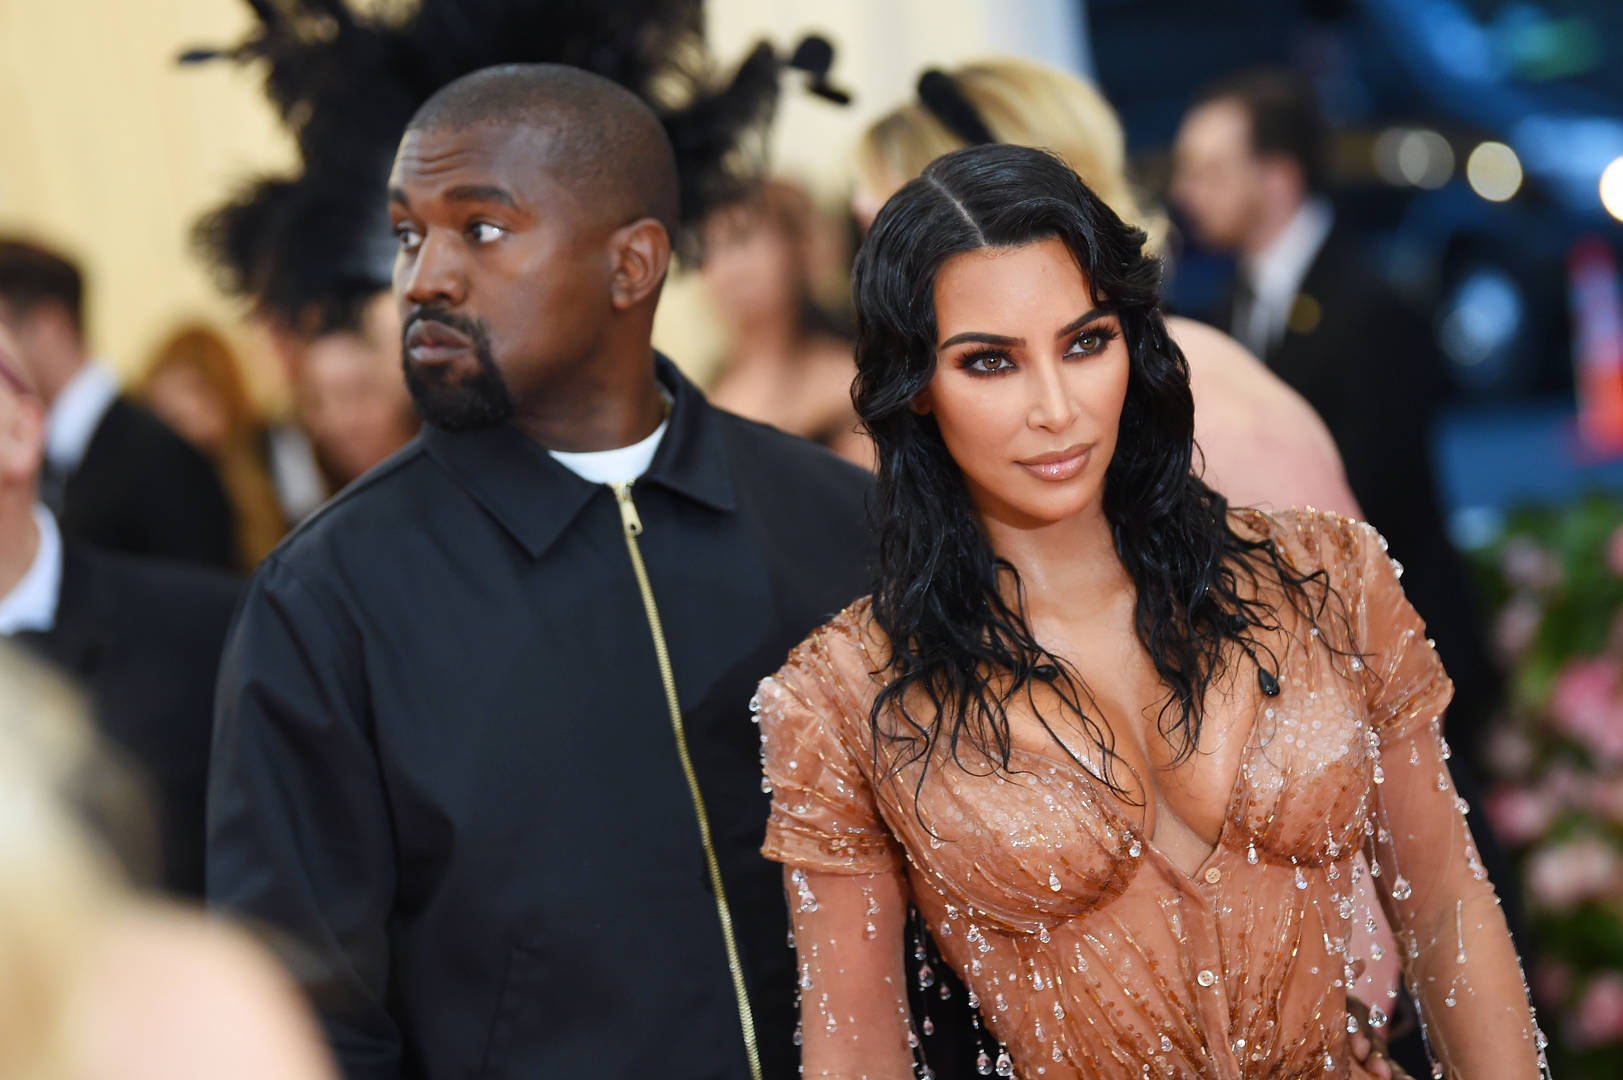 Kim Kardashian files for divorce from Kanye West, US media reports